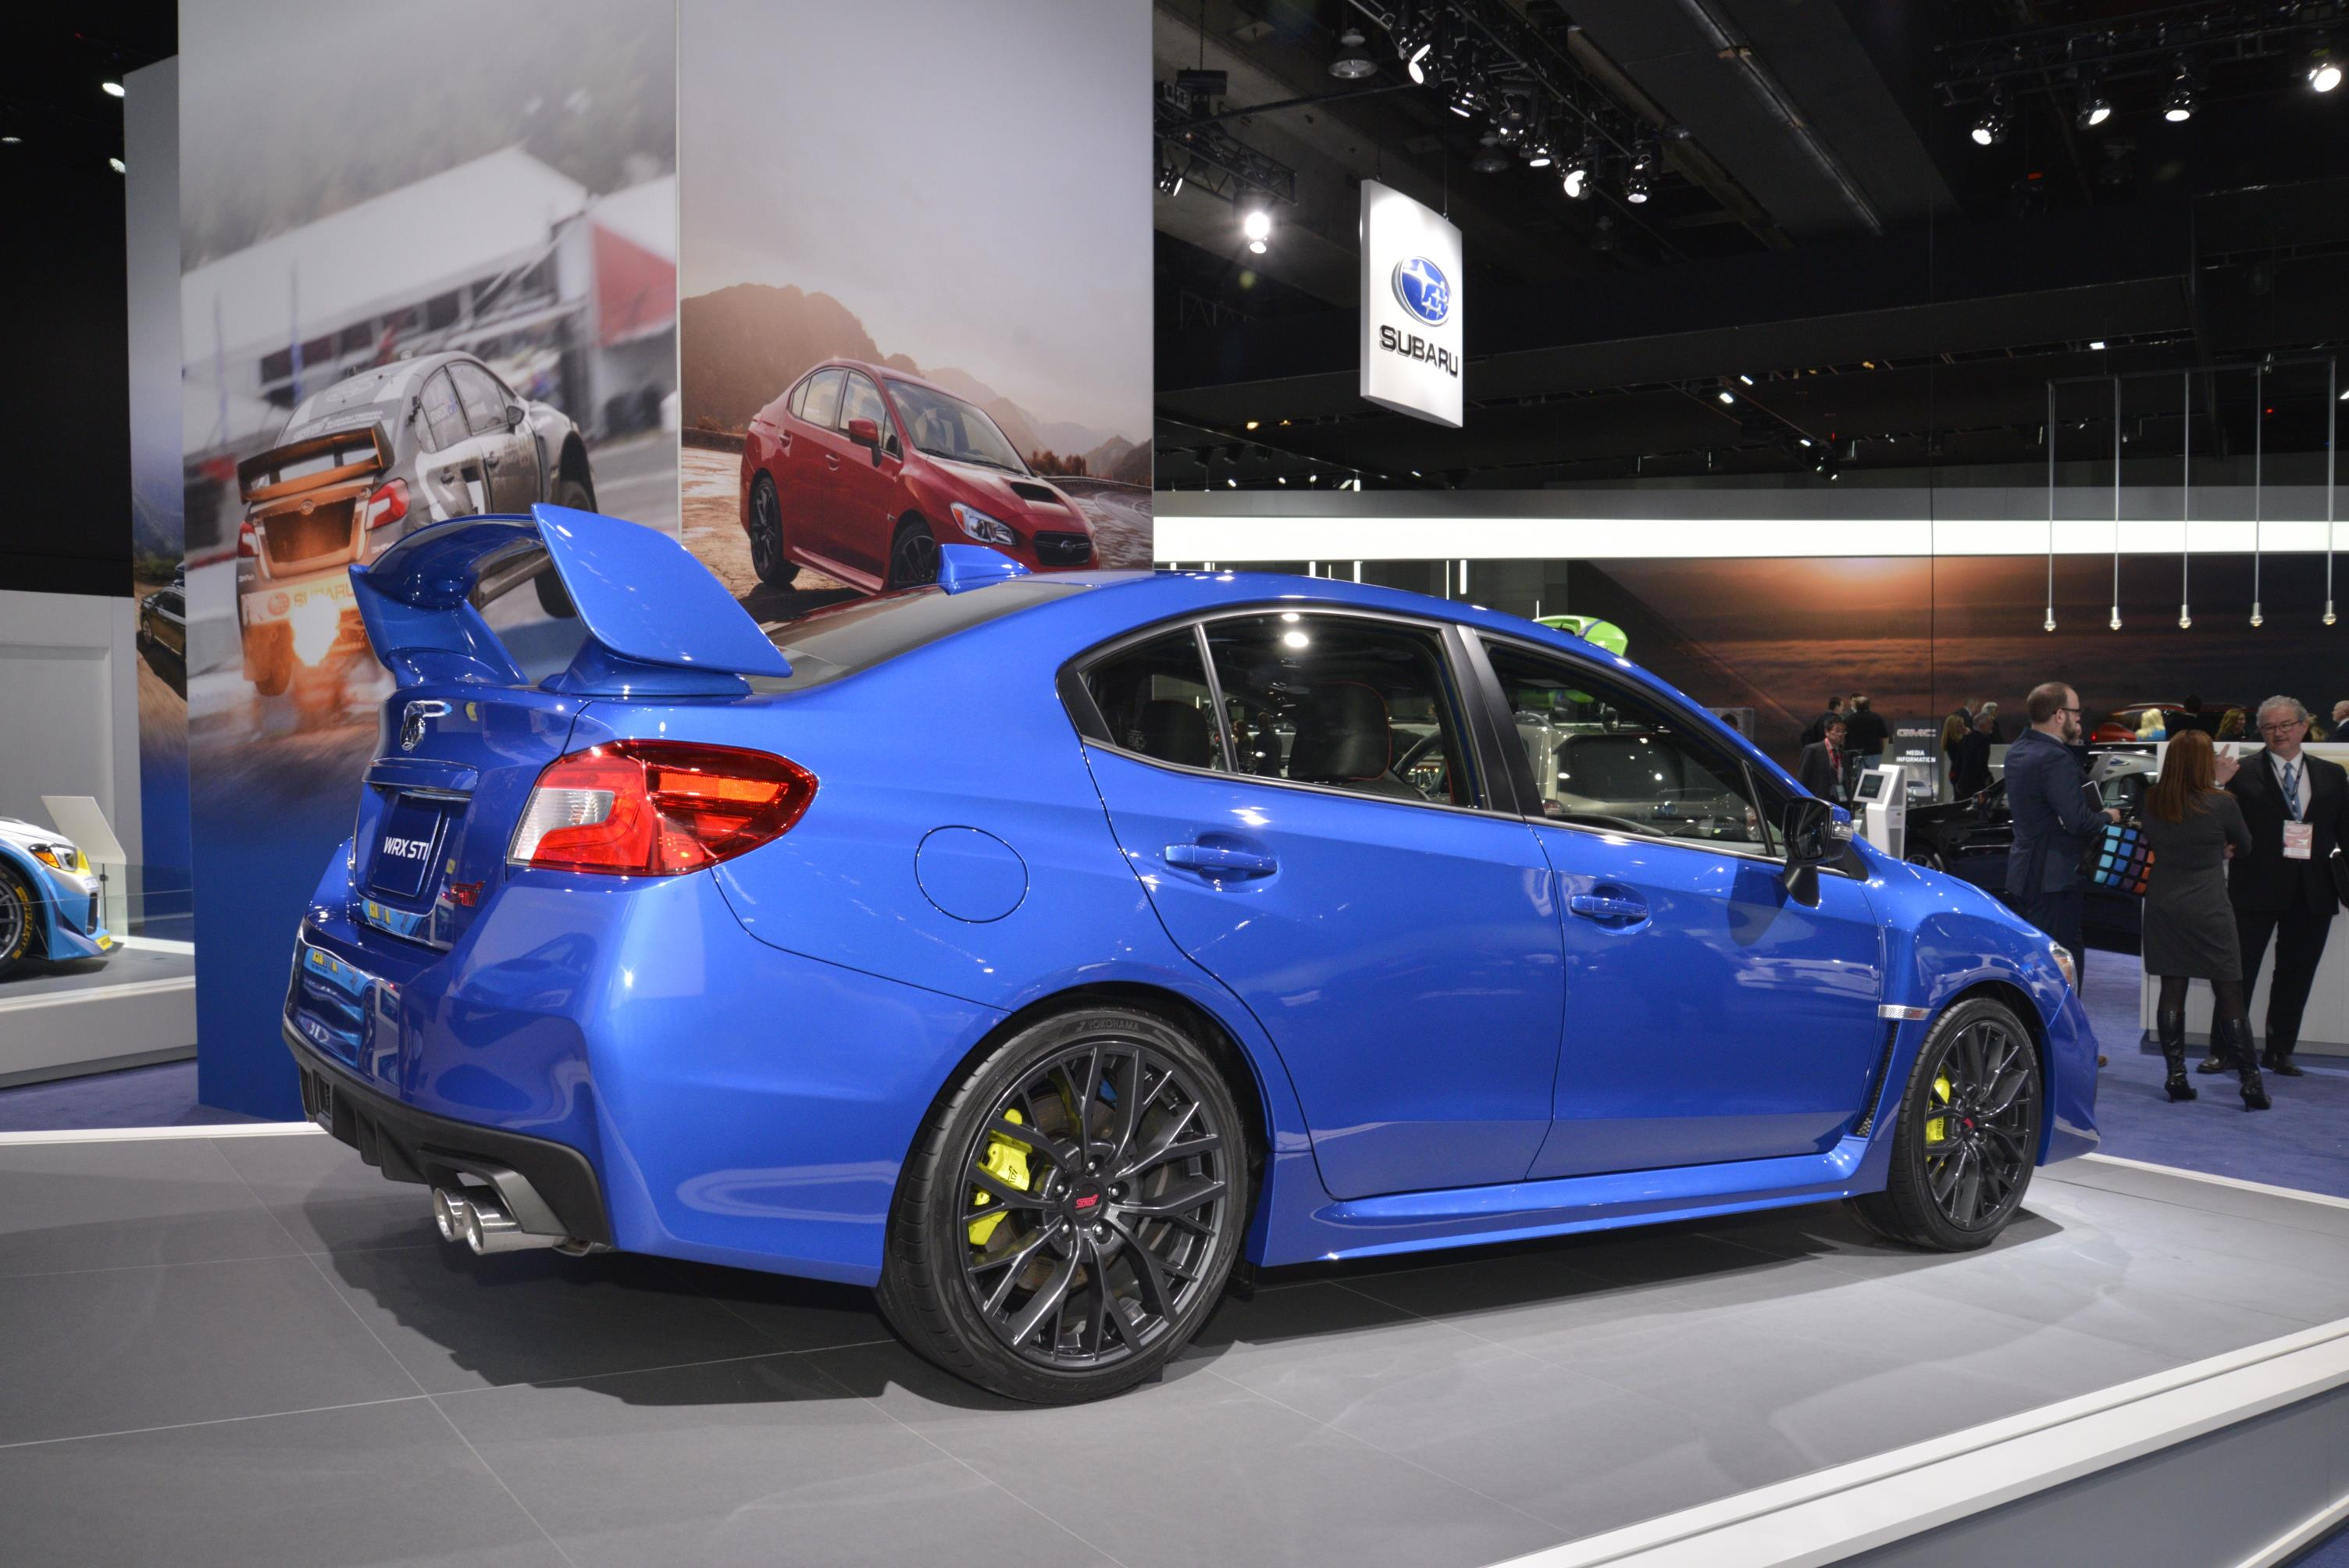 2018 subaru rally car.  rally 2018 subaru wrx and sti live from detroit  for subaru rally car